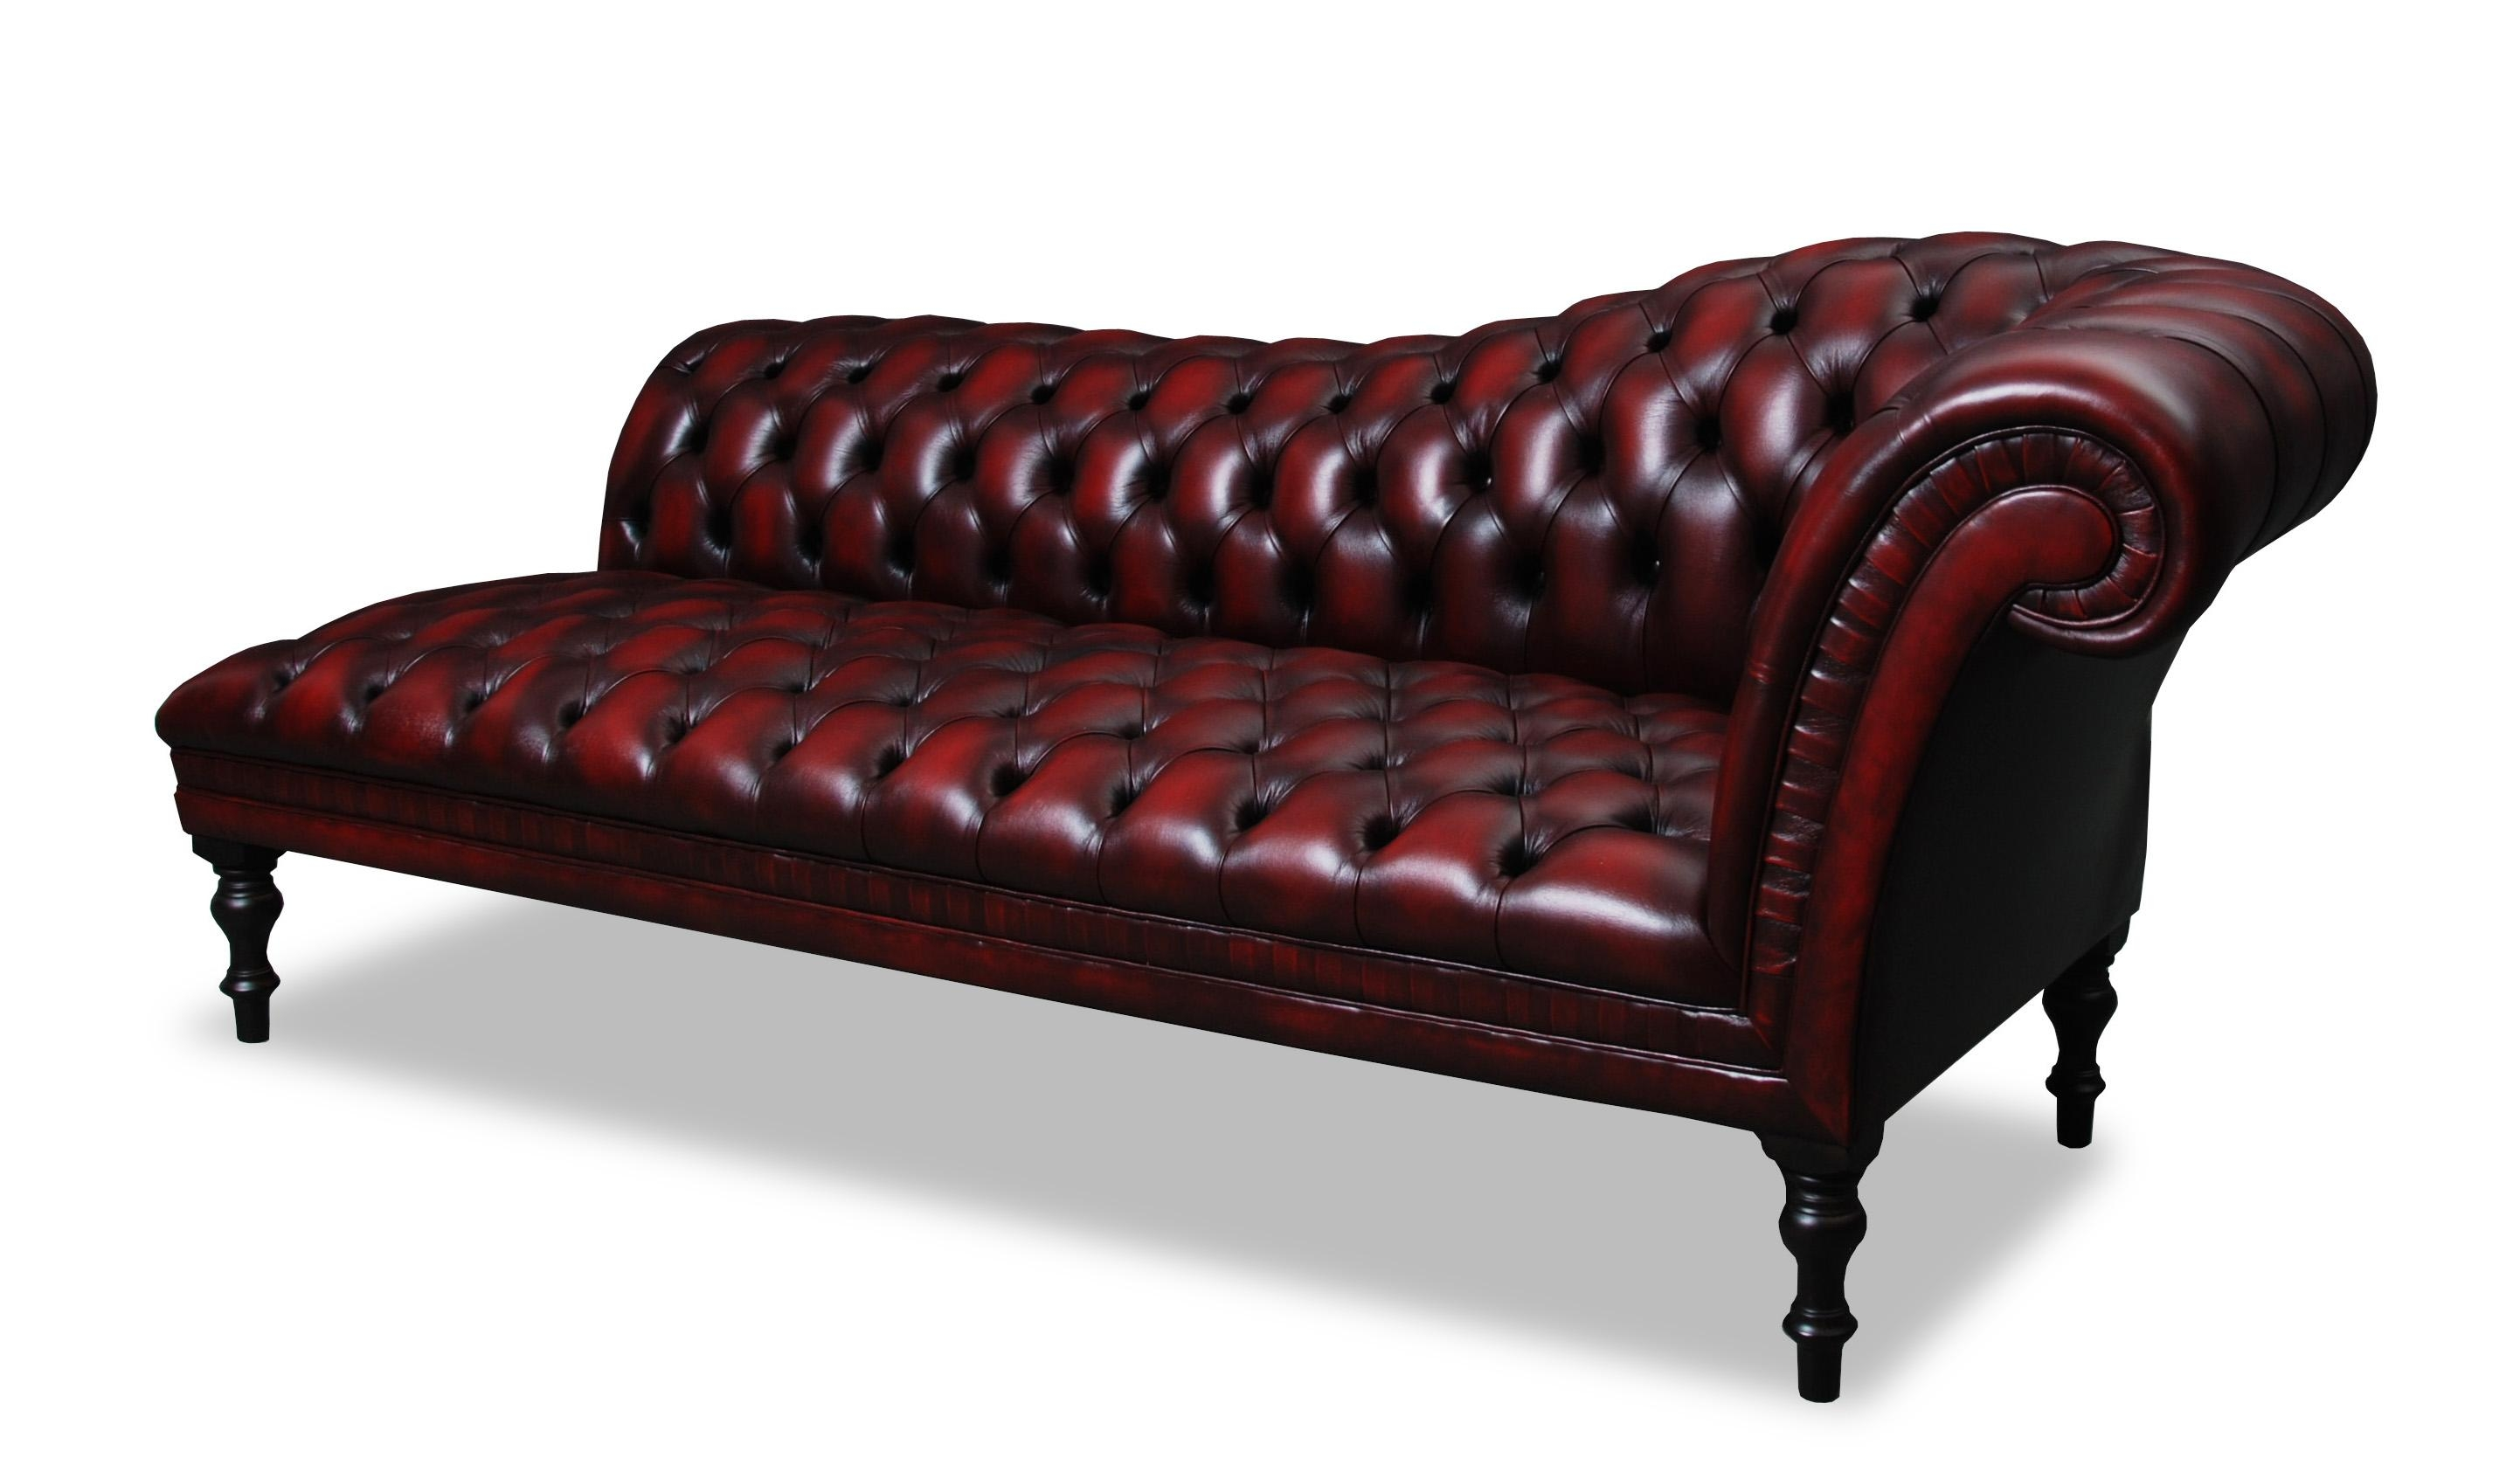 Buy A Chesterfield Sofa 20 Inspirations Red Chesterfield Sofas Sofa Ideas